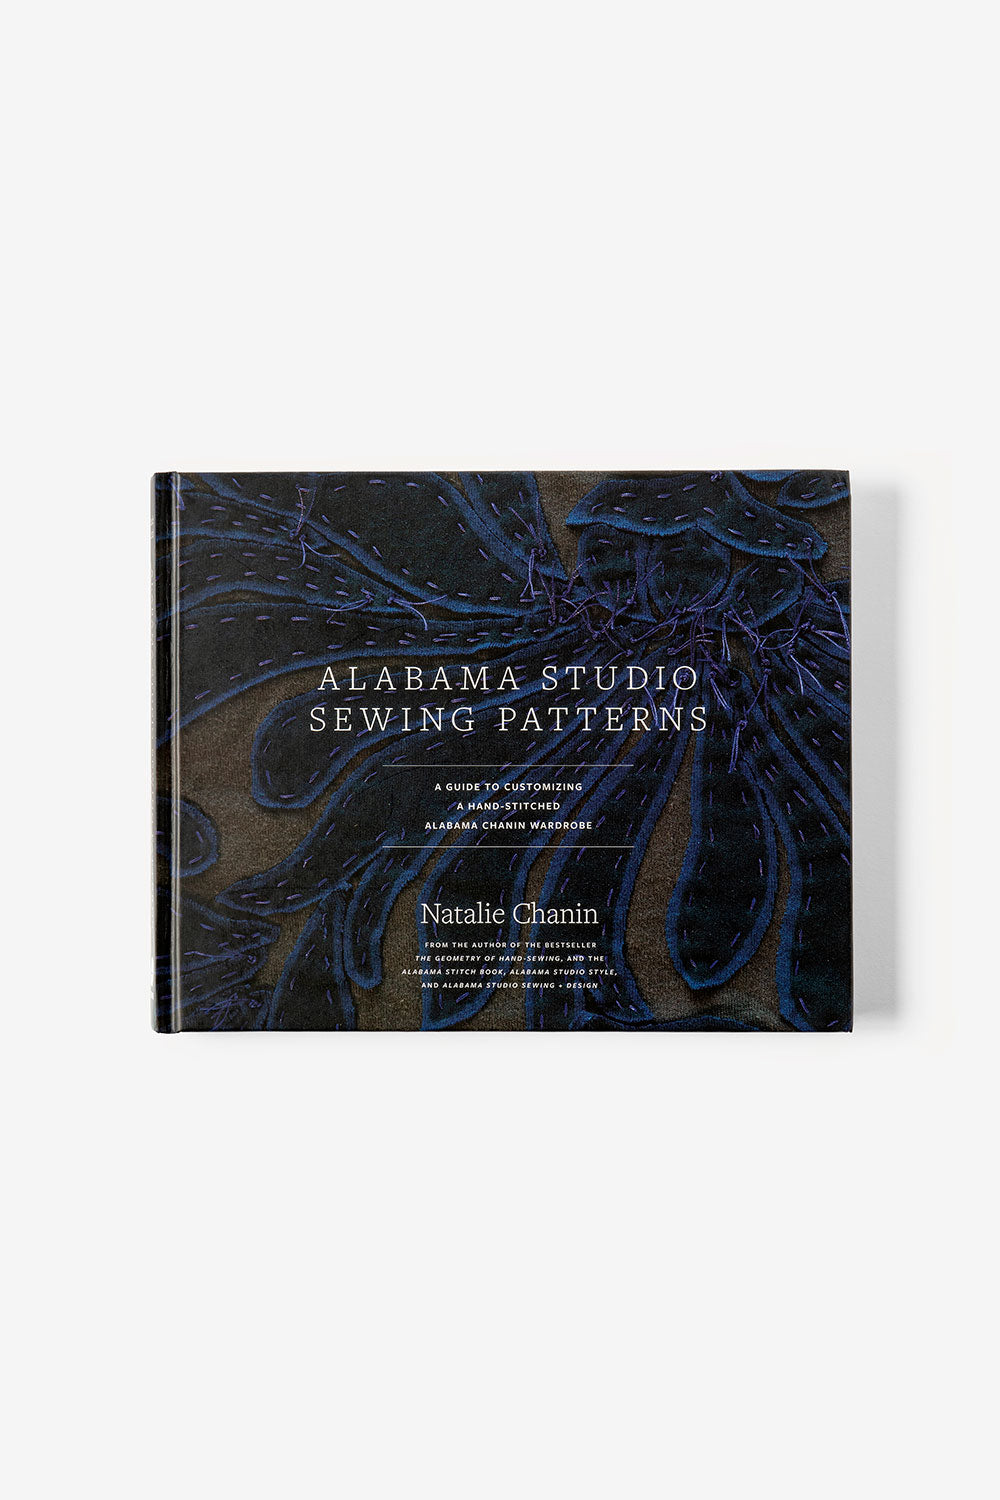 The School of Making Alabama Studio Sewing Patterns by Natalie Chanin Book Cover